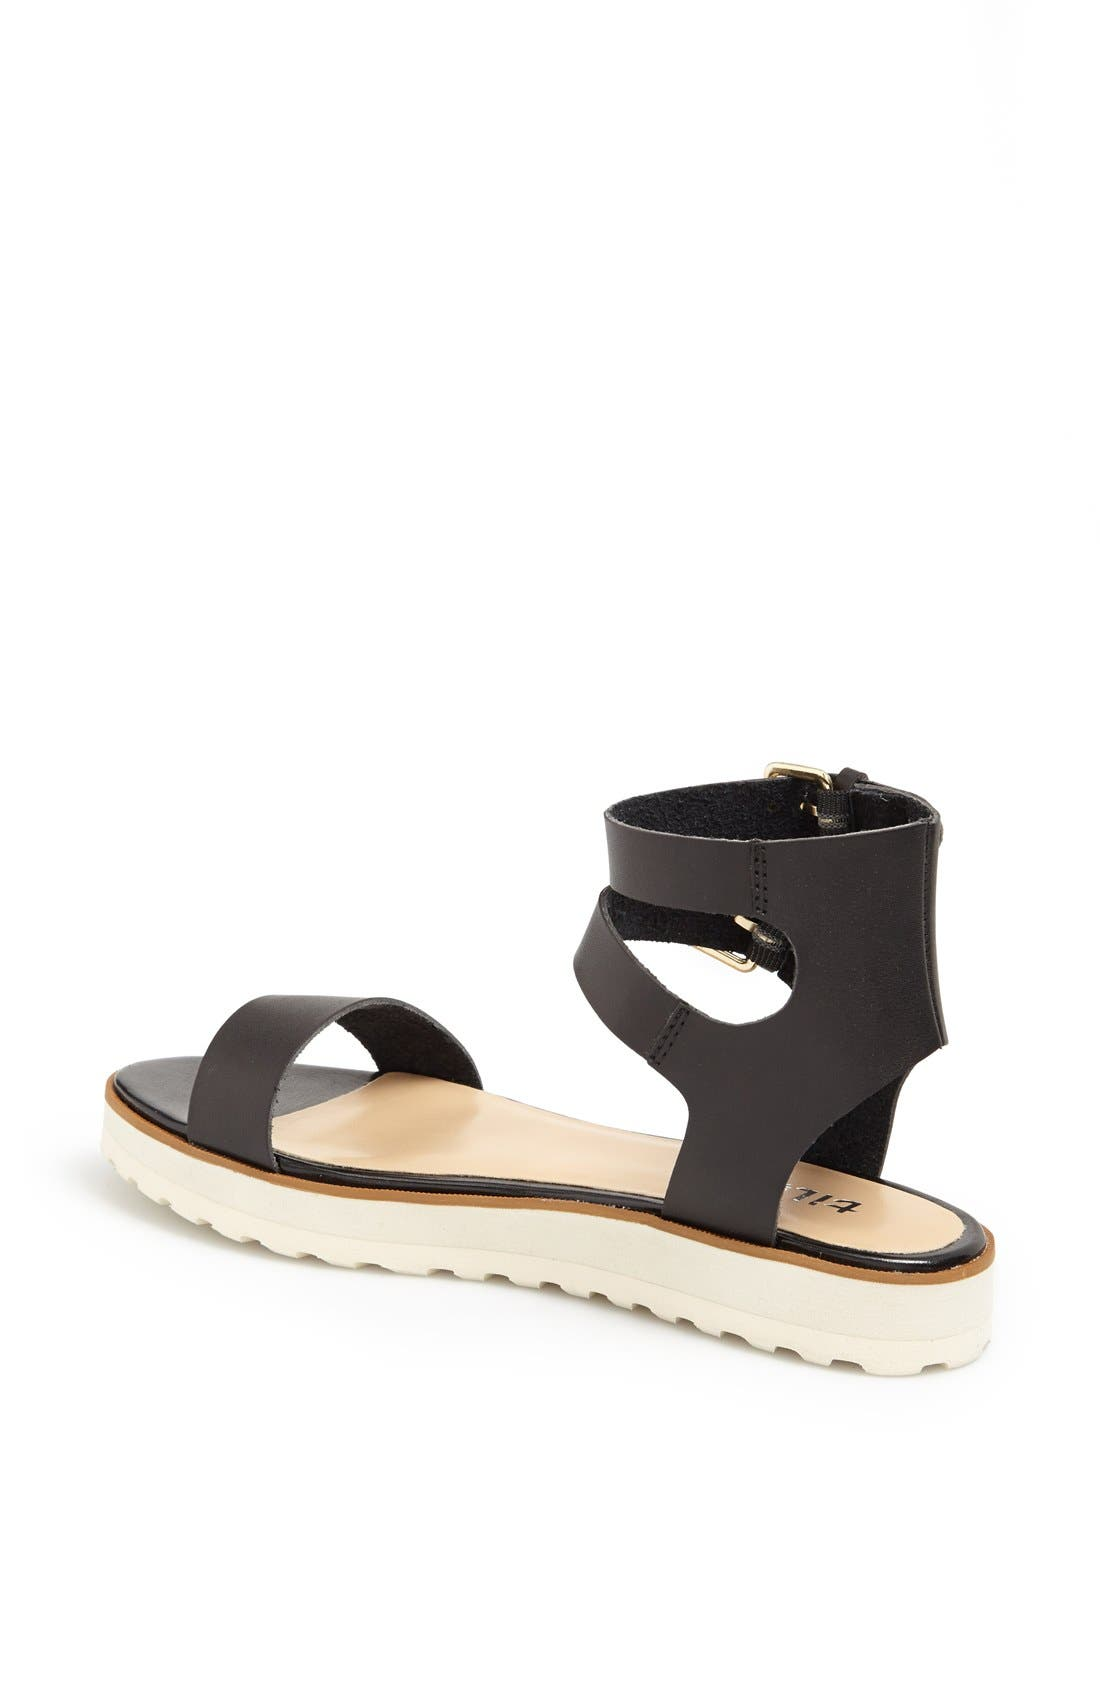 TILDON, 'Manda' Platform Ankle Strap Sandal, Alternate thumbnail 2, color, 002